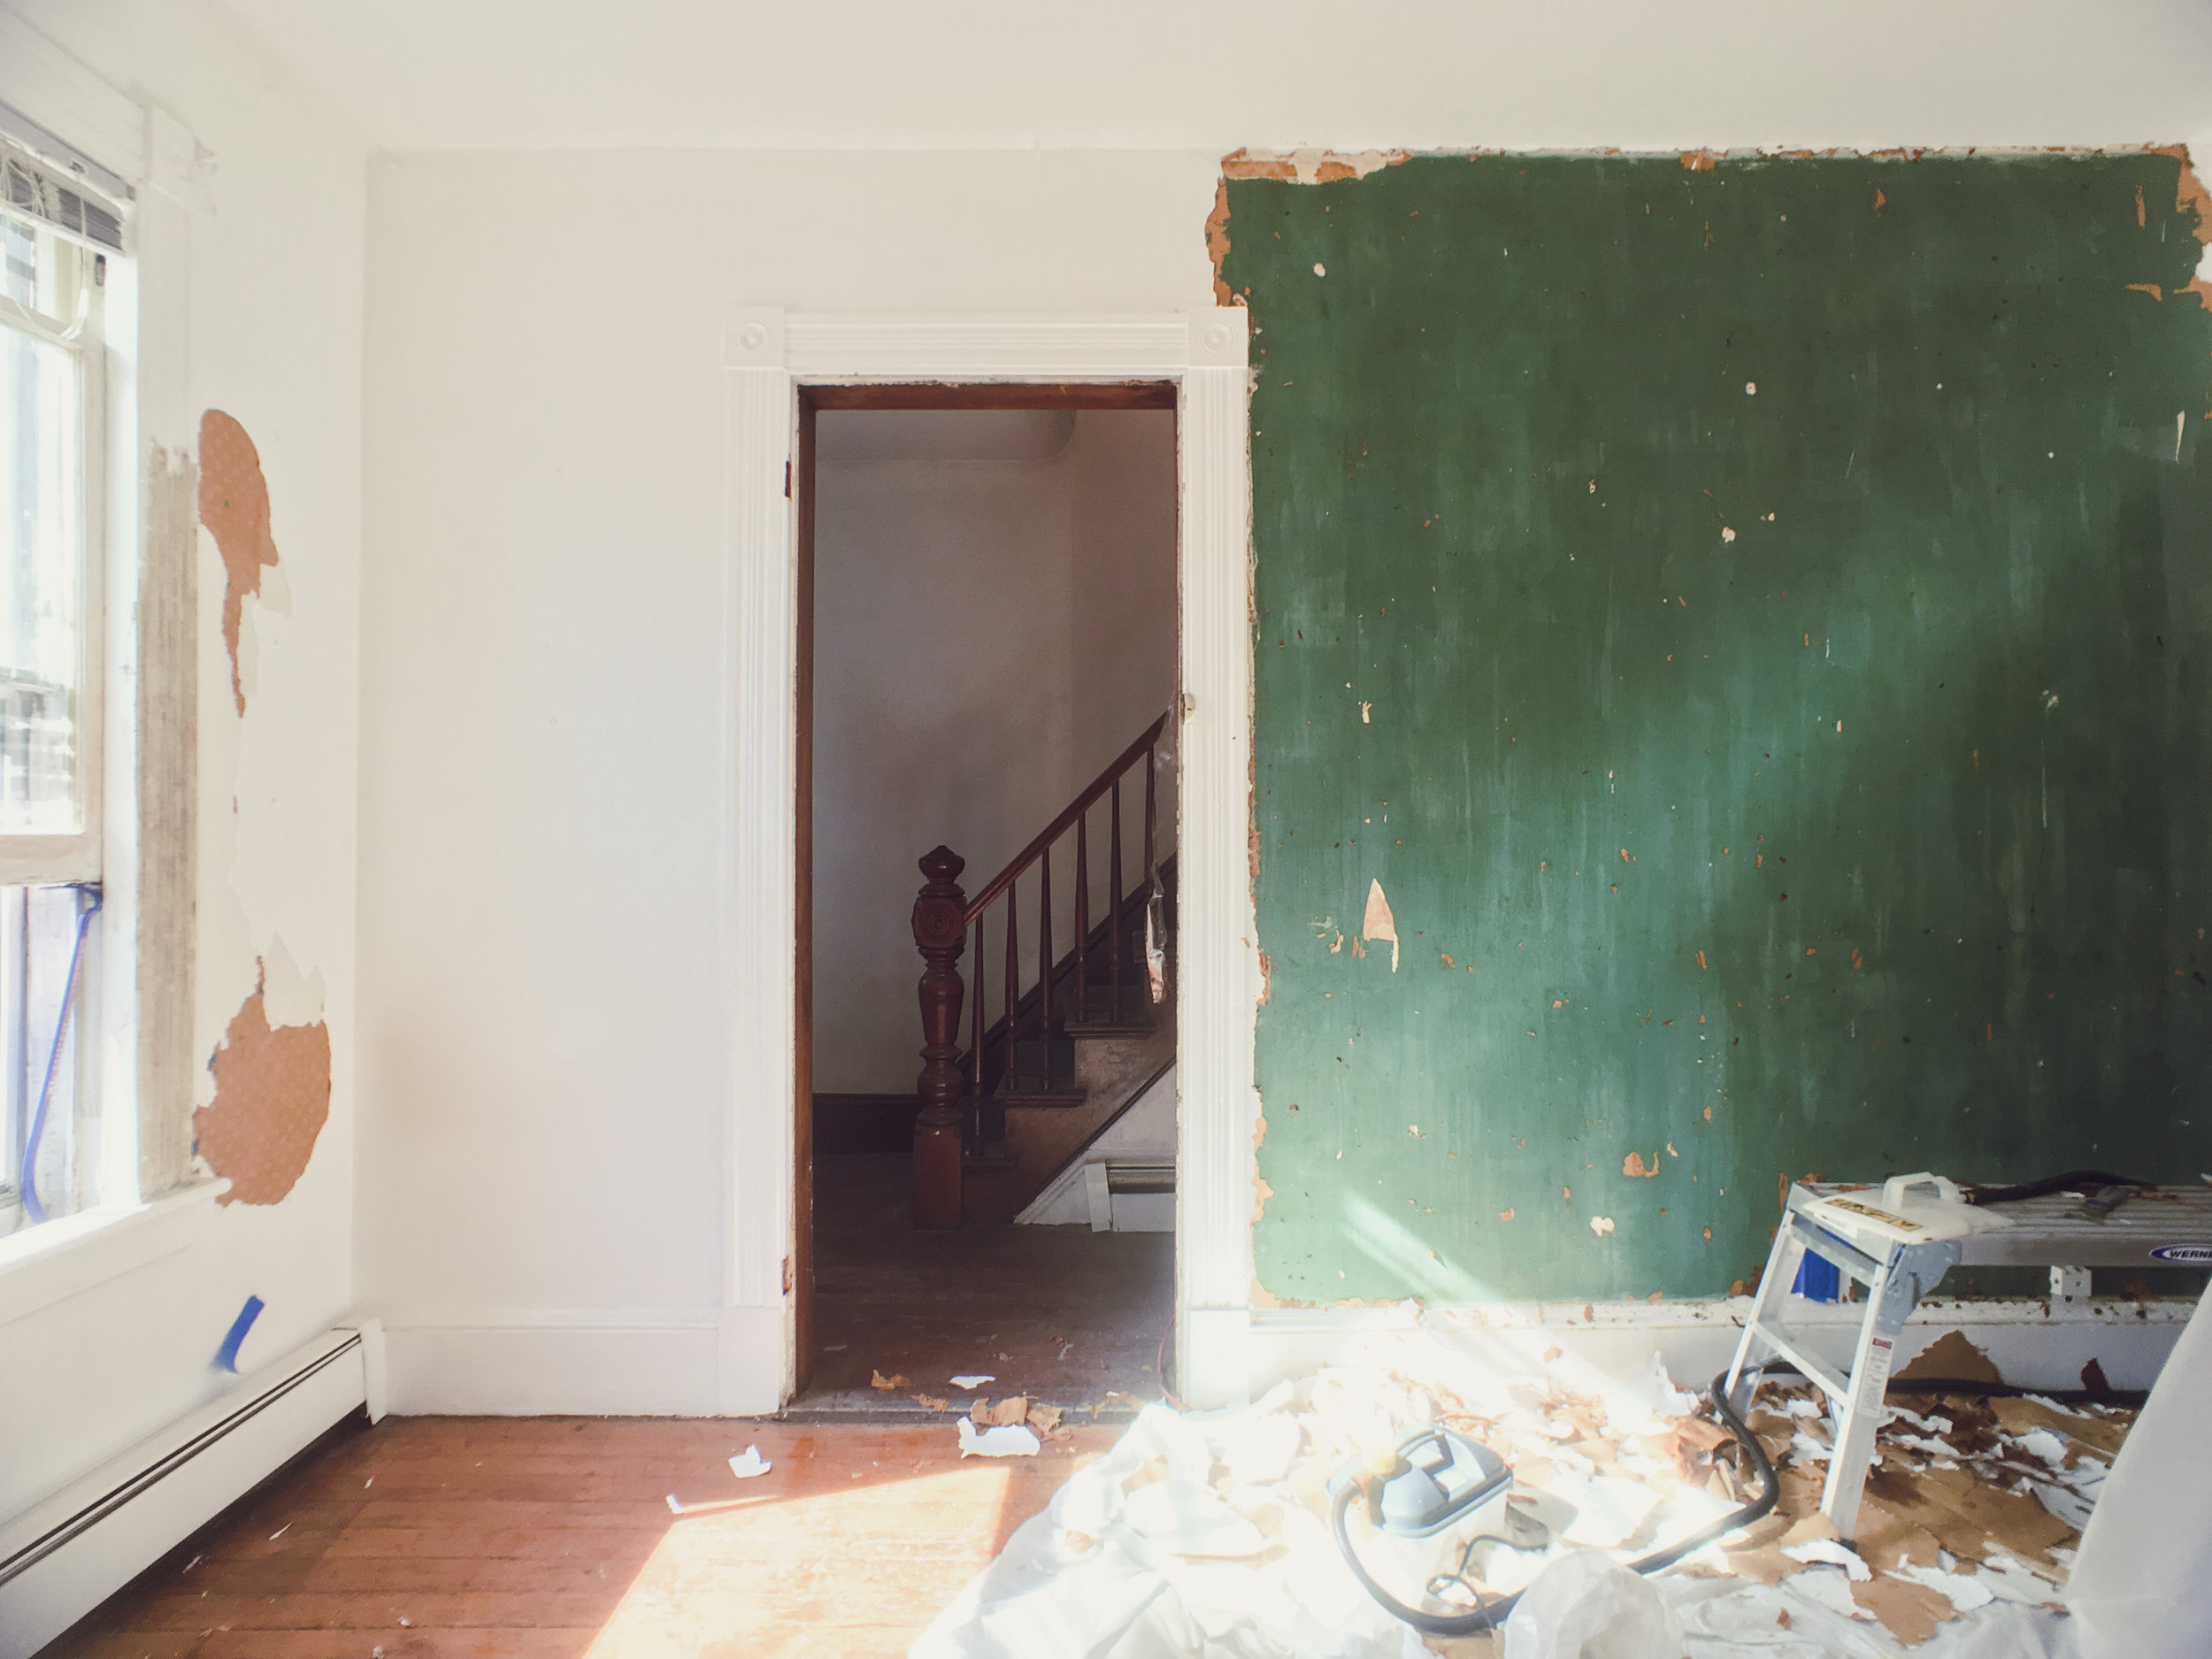 The first floor tenant apartment's original green plaster walls revealed after hours of stripping wallpaper.